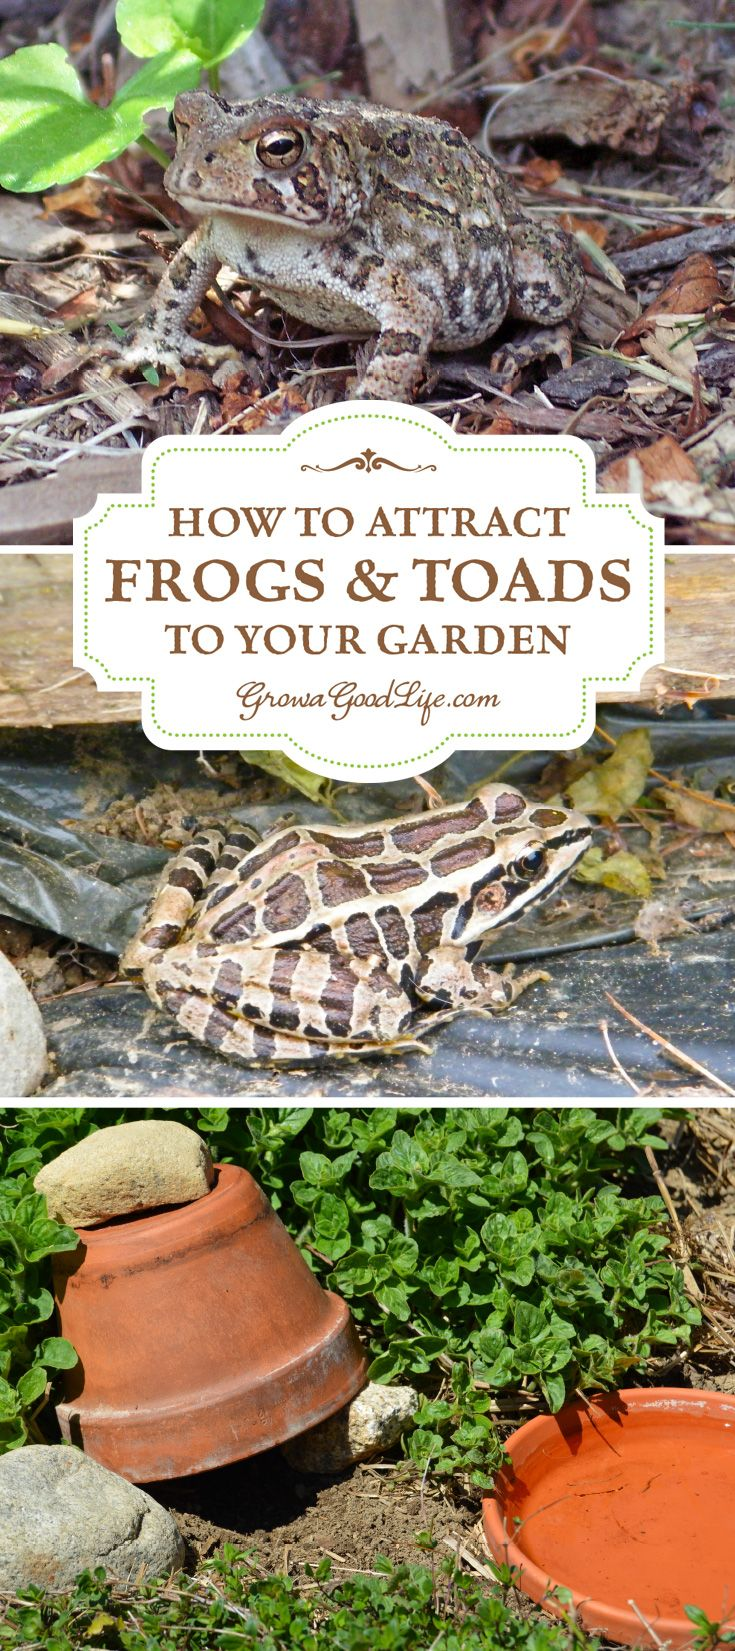 Attracting and encouraging toads and frogs to live in your garden keeps the pest population down and reduces the need for pesticides or other natural insect deterrents. Just one frog or toad can eat up to 10,000 pests during the garden season. Here are some tips on how to attract and encourage toads and frogs to live in your garden.